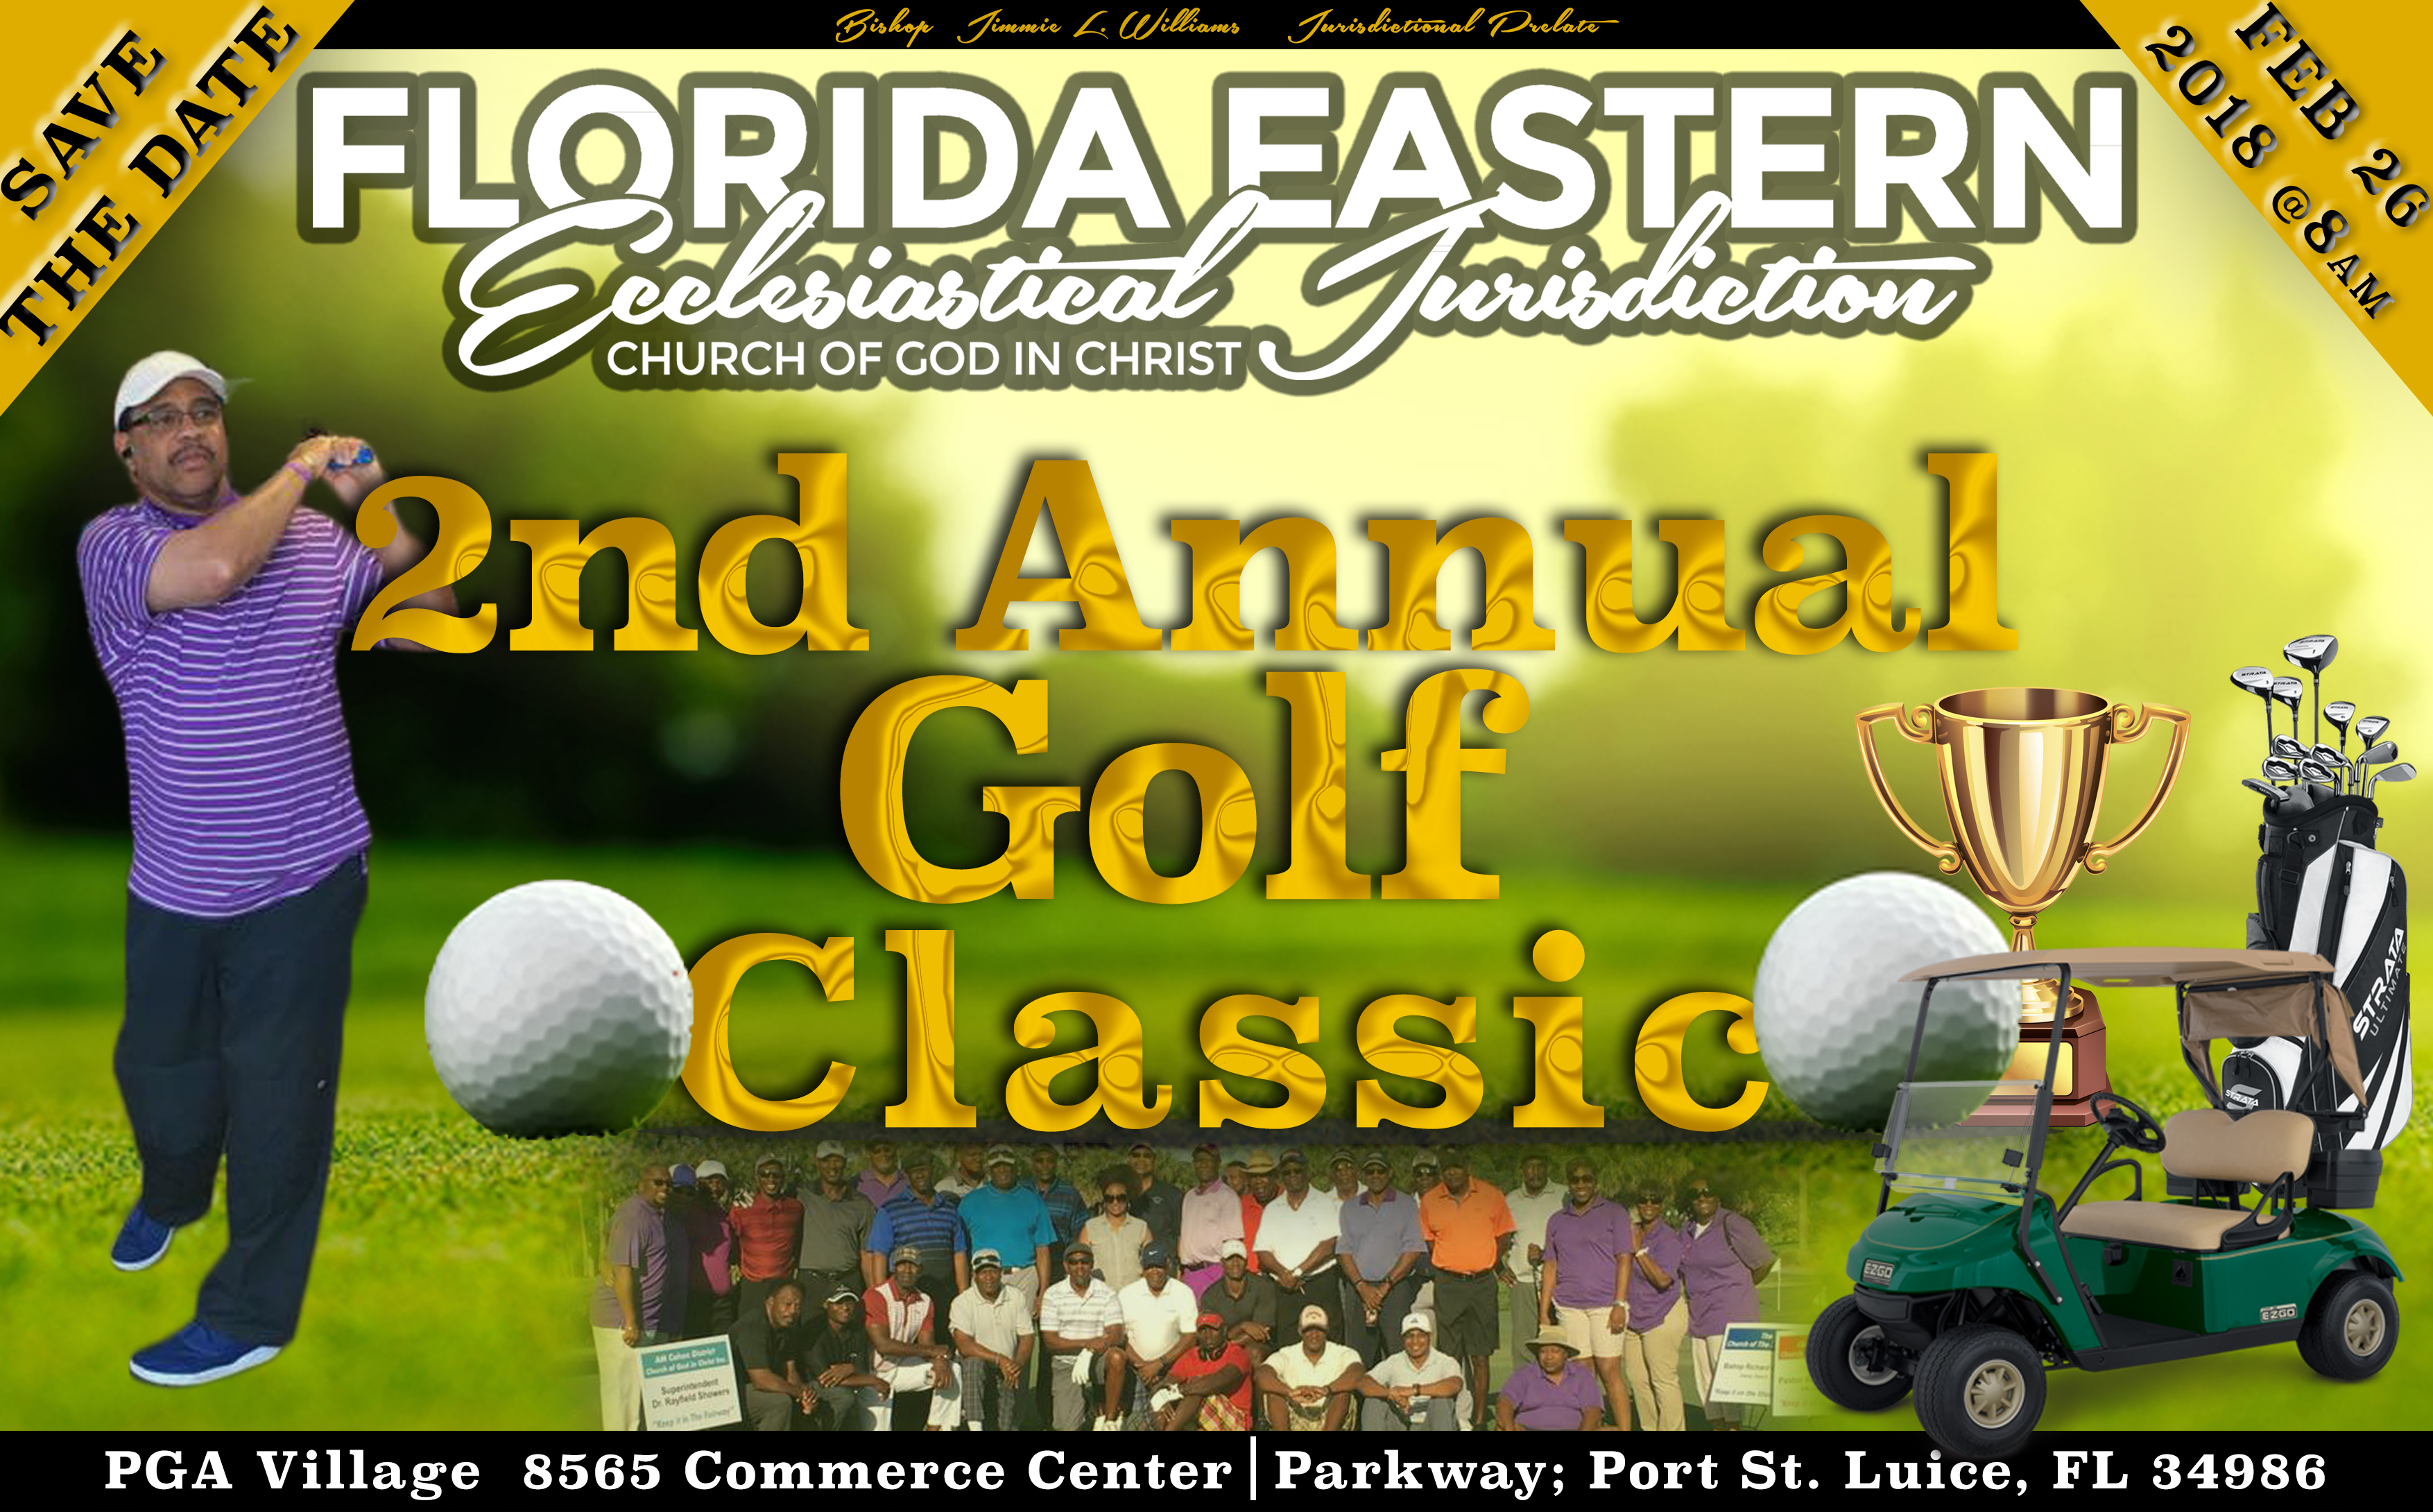 FEEJ-2ND-ANNUAL-GOLF-CLASSIC-4